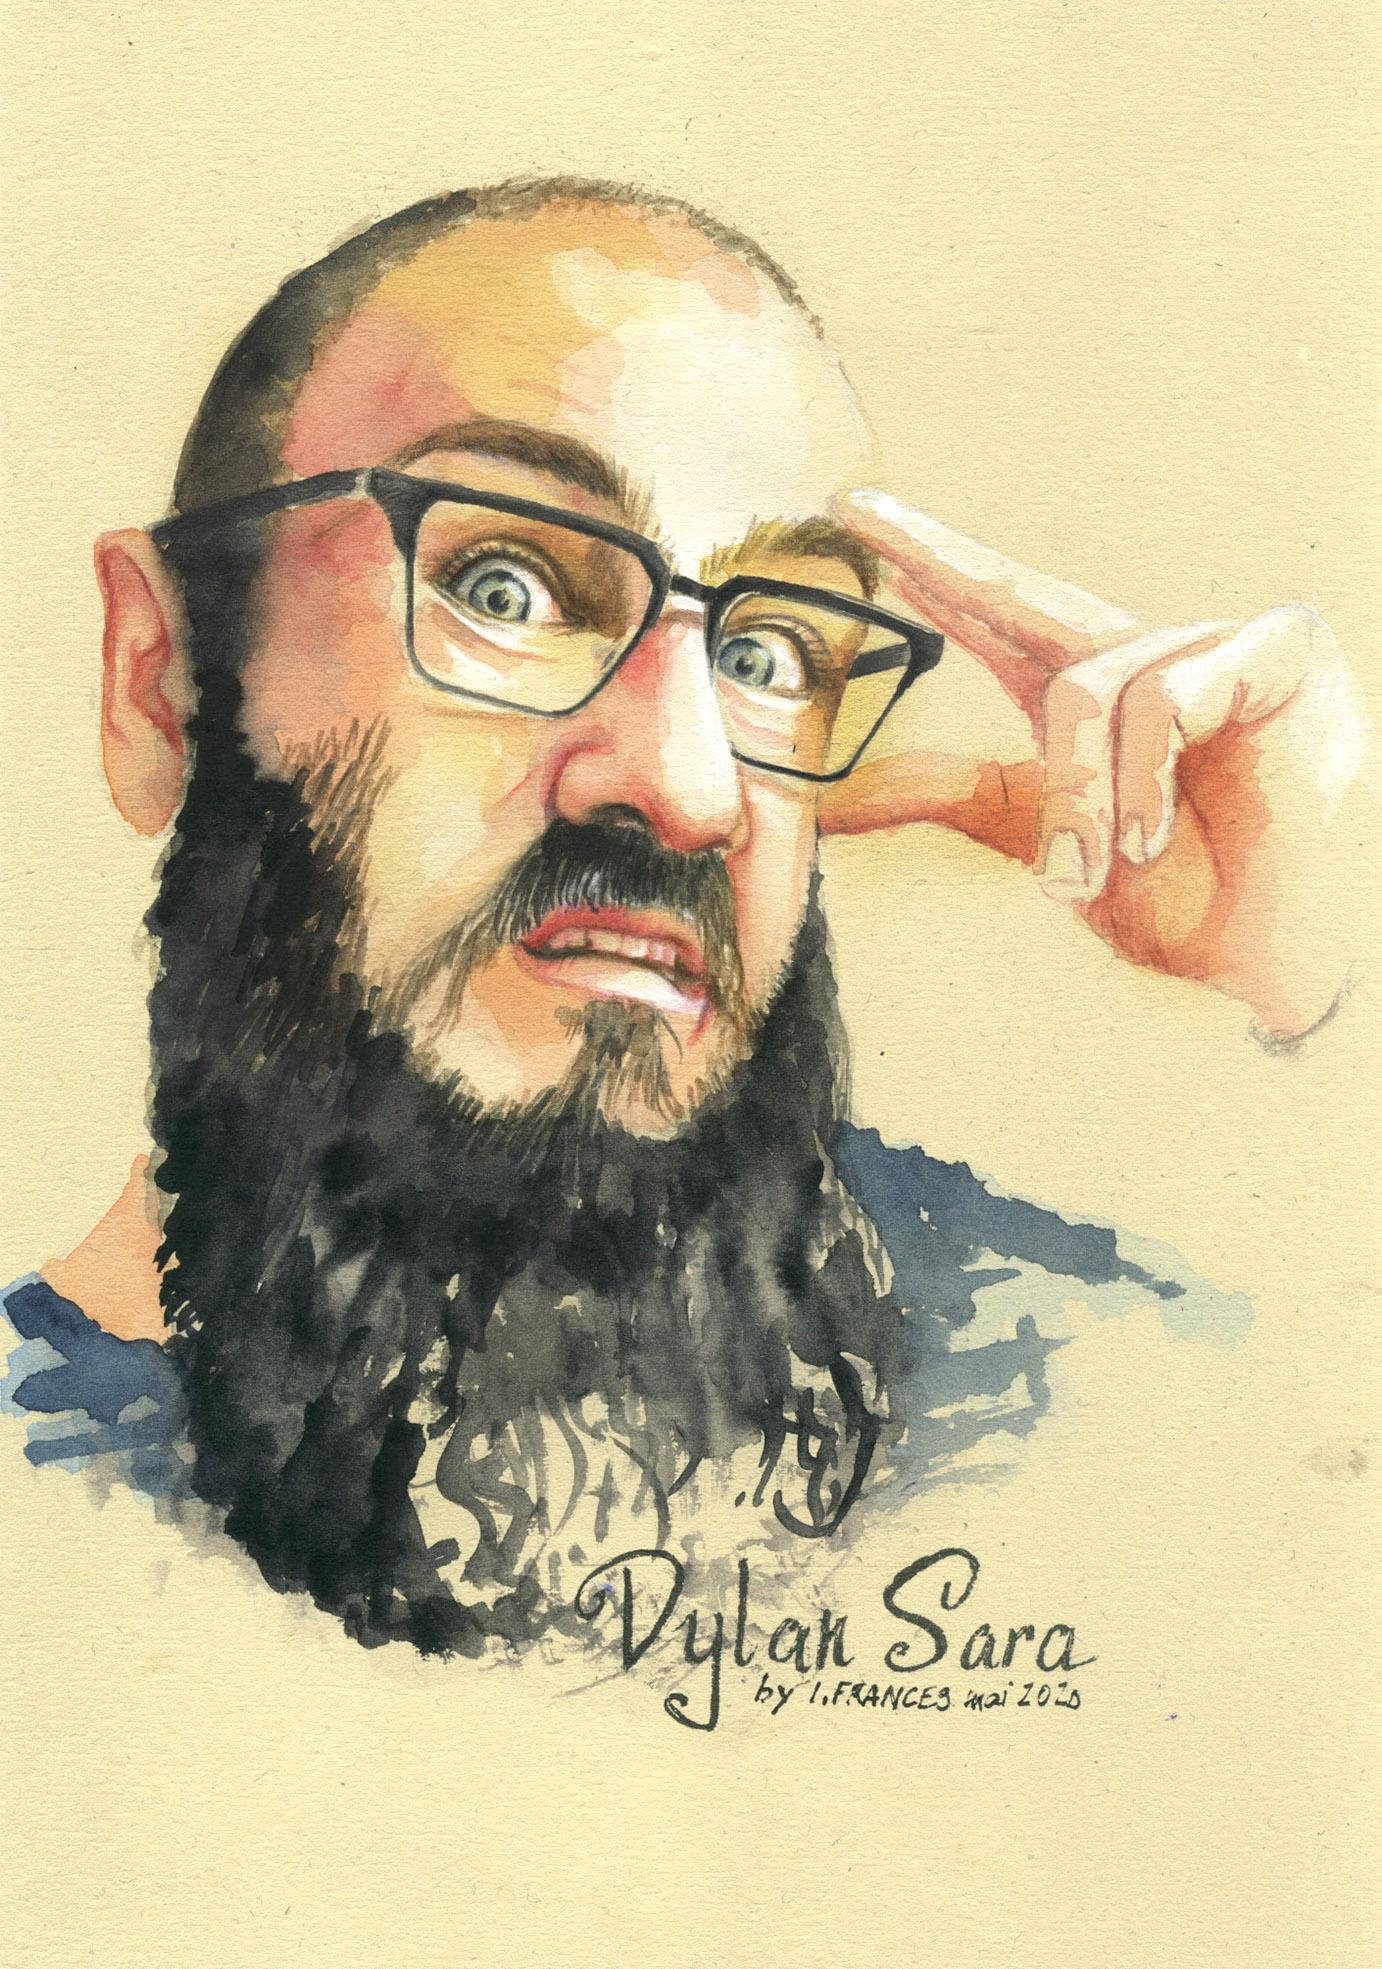 Portrait à l'aquarelle de Dylan Sara, d'apres une photo Sktchy - ©IF